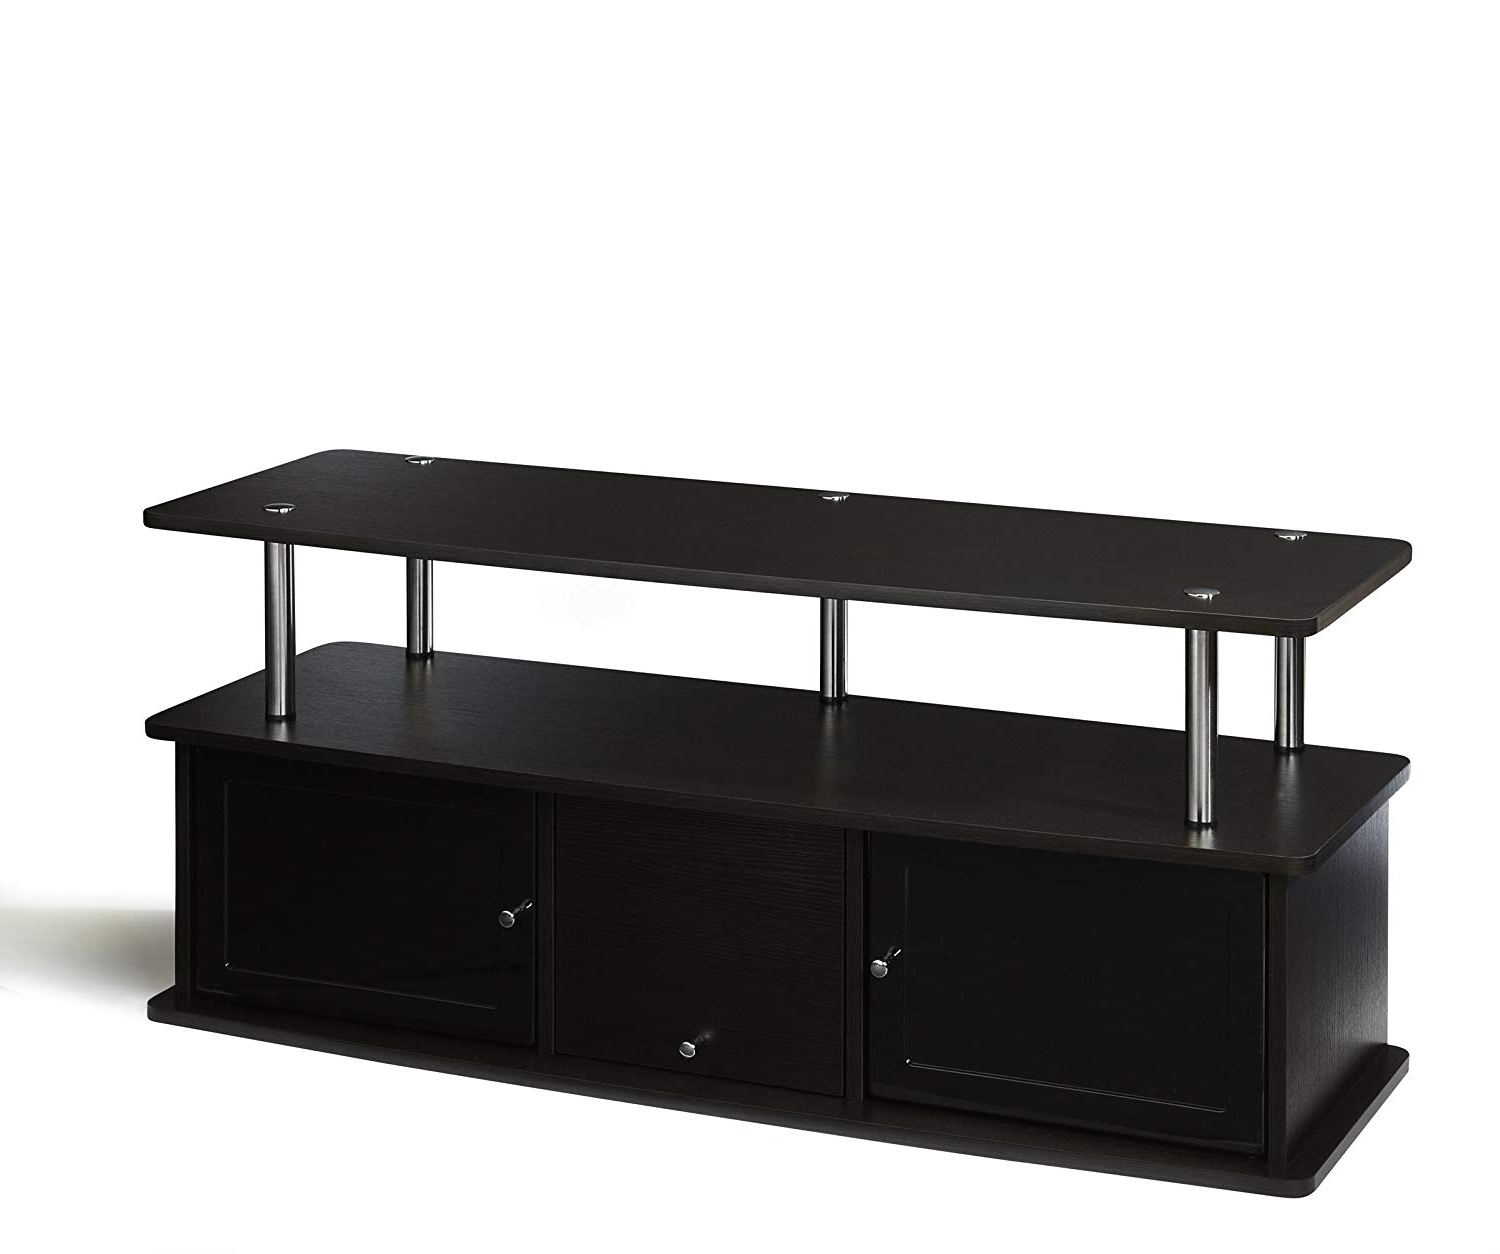 Preferred Amazon: Convenience Concepts Designs2go Tv Stand With 3 Cabinets Intended For Led Tv Cabinets (View 14 of 20)